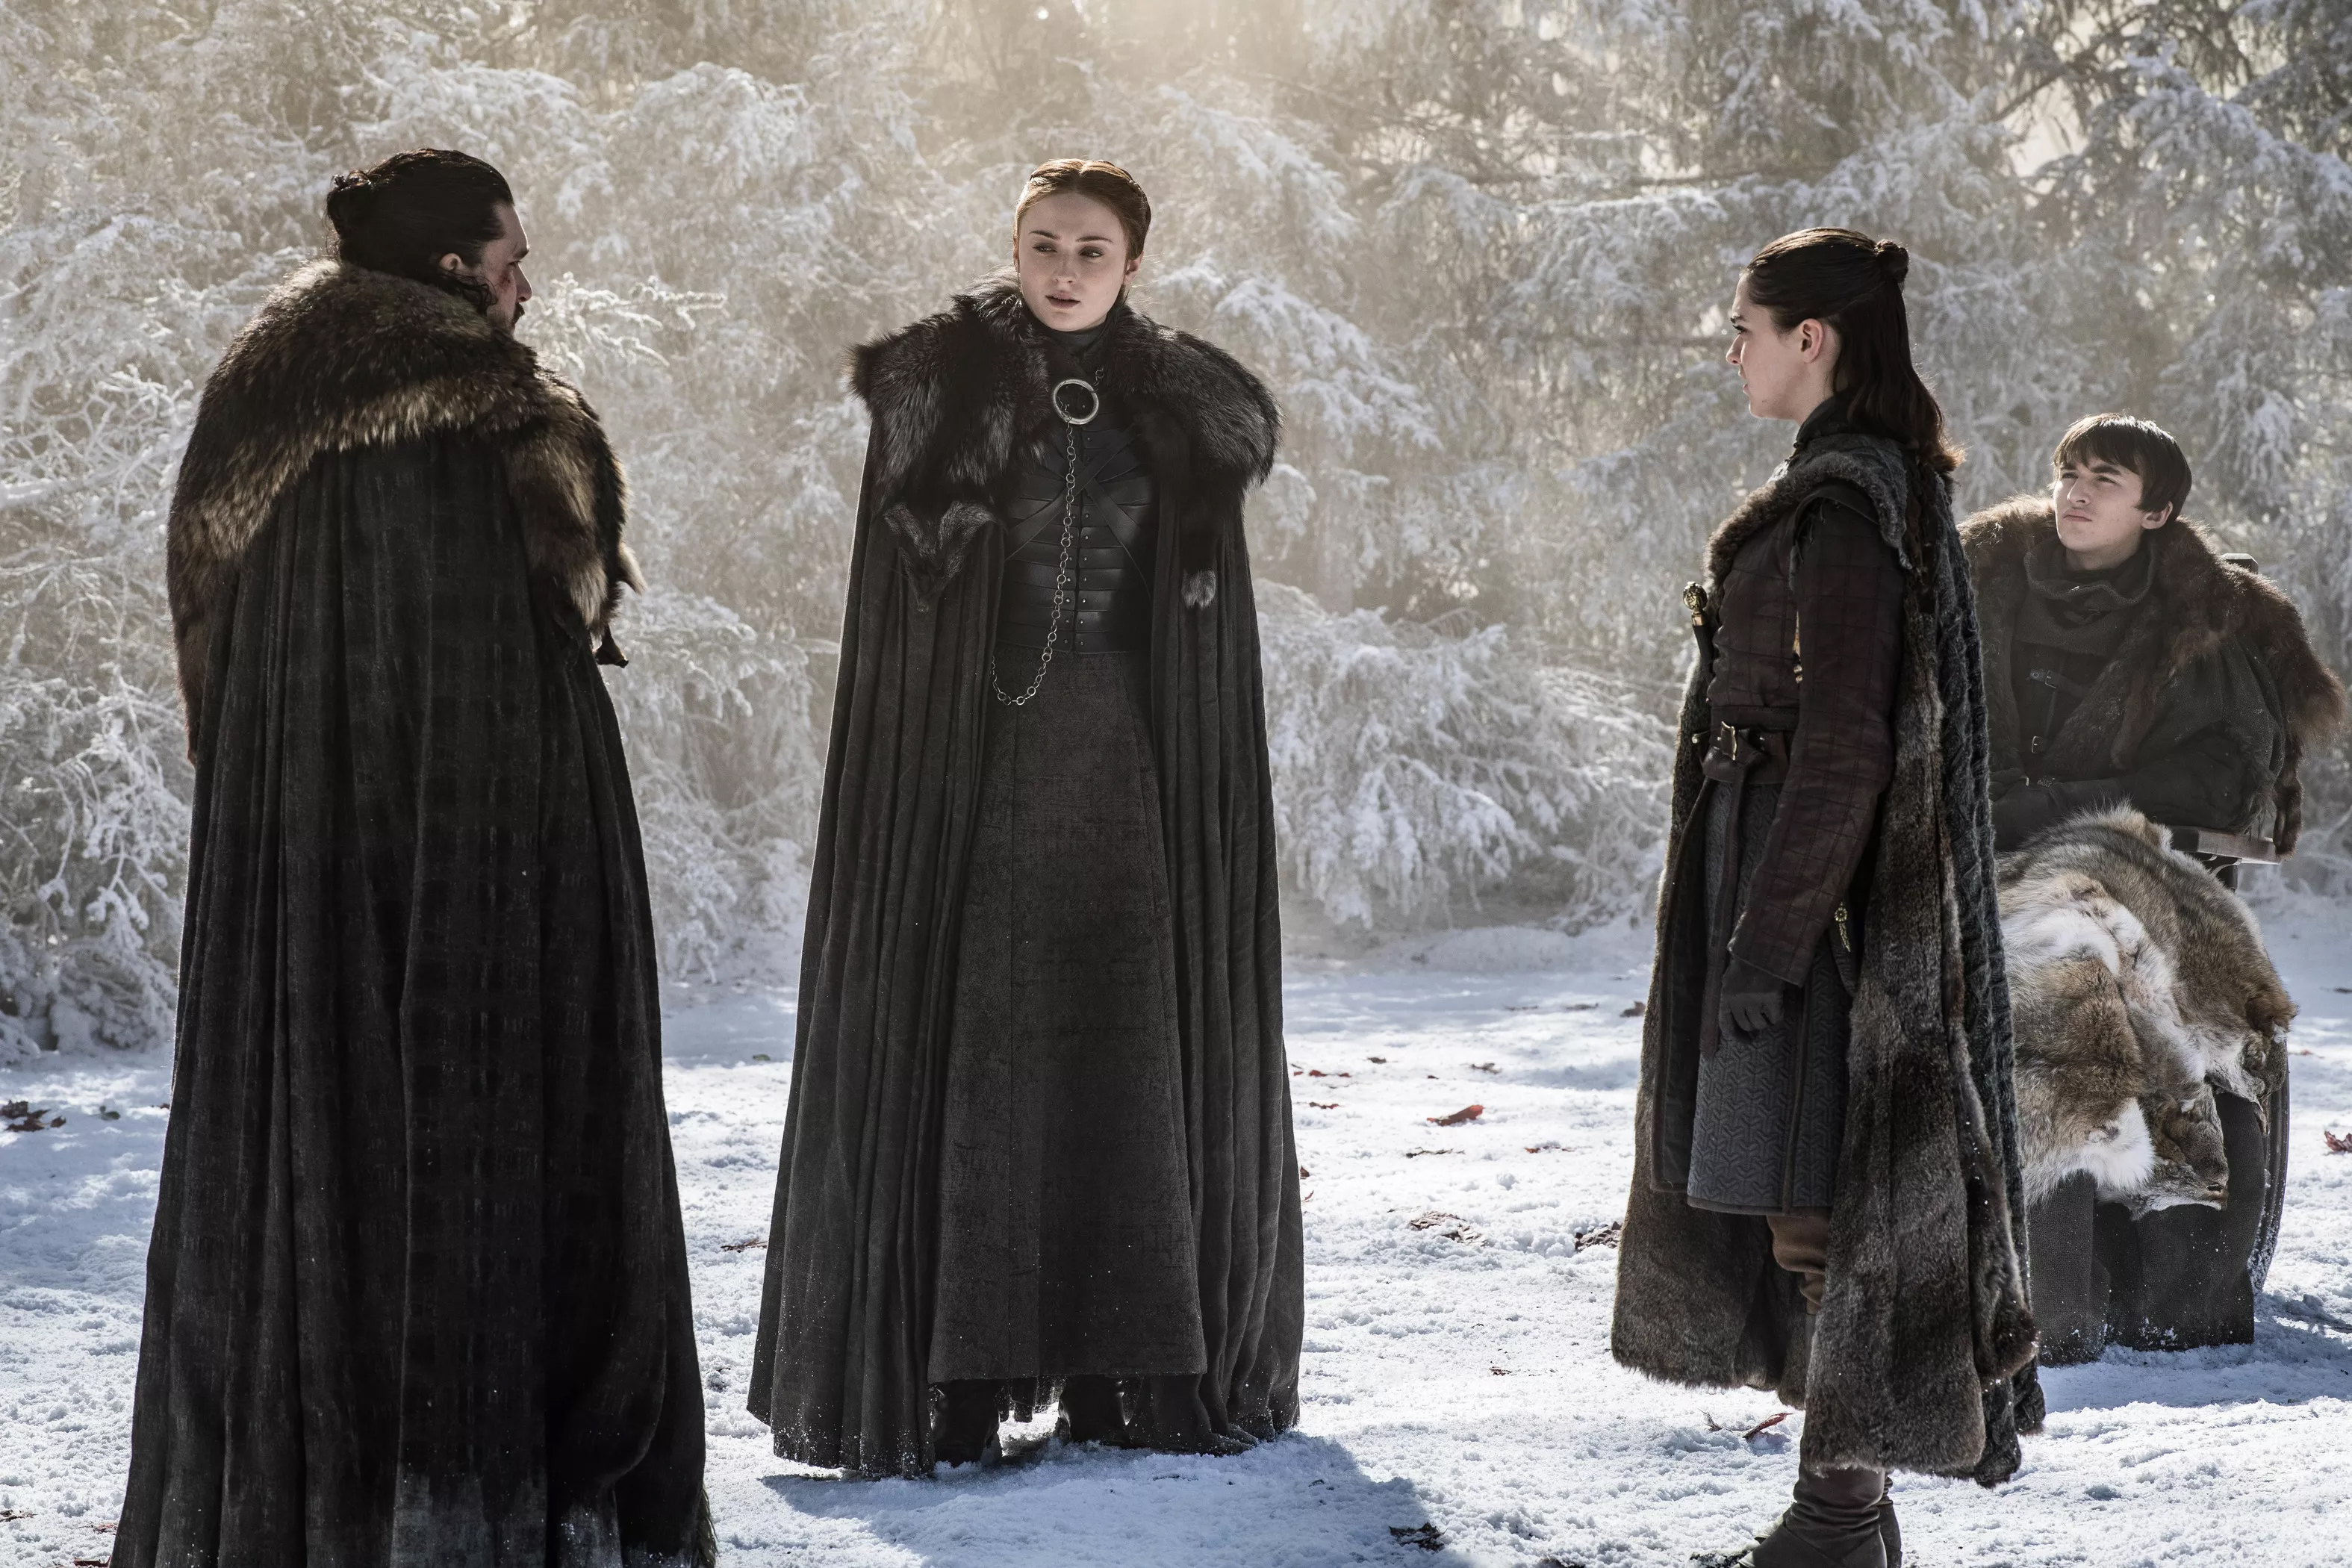 8x04 - The Last of the Starks - Jon, Sansa, Arya and Bran